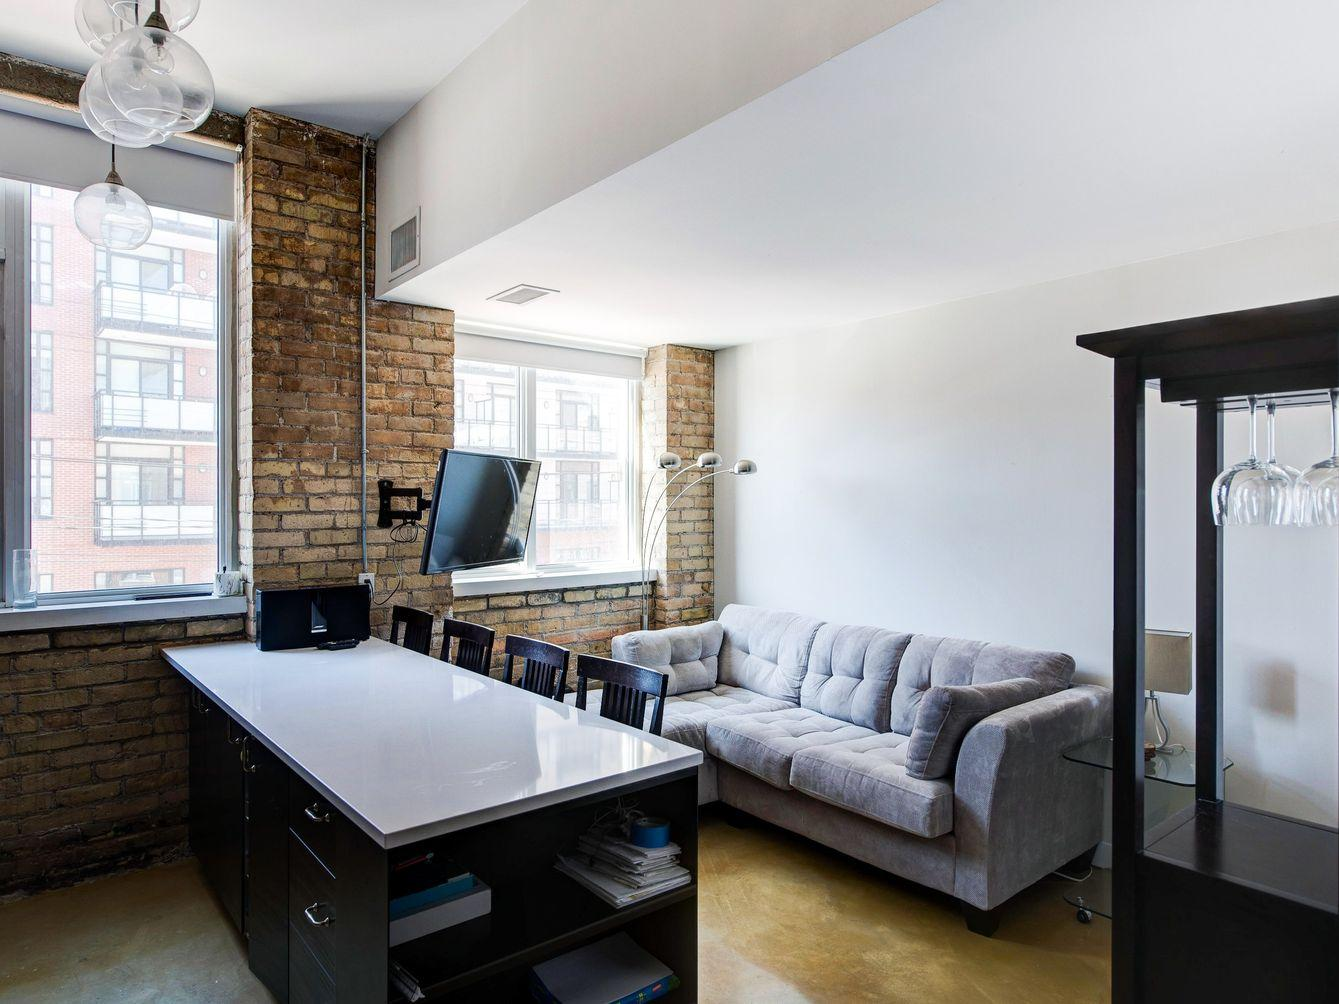 Leslieville Real Estate News: 201 Carlaw Avenue Unit 234